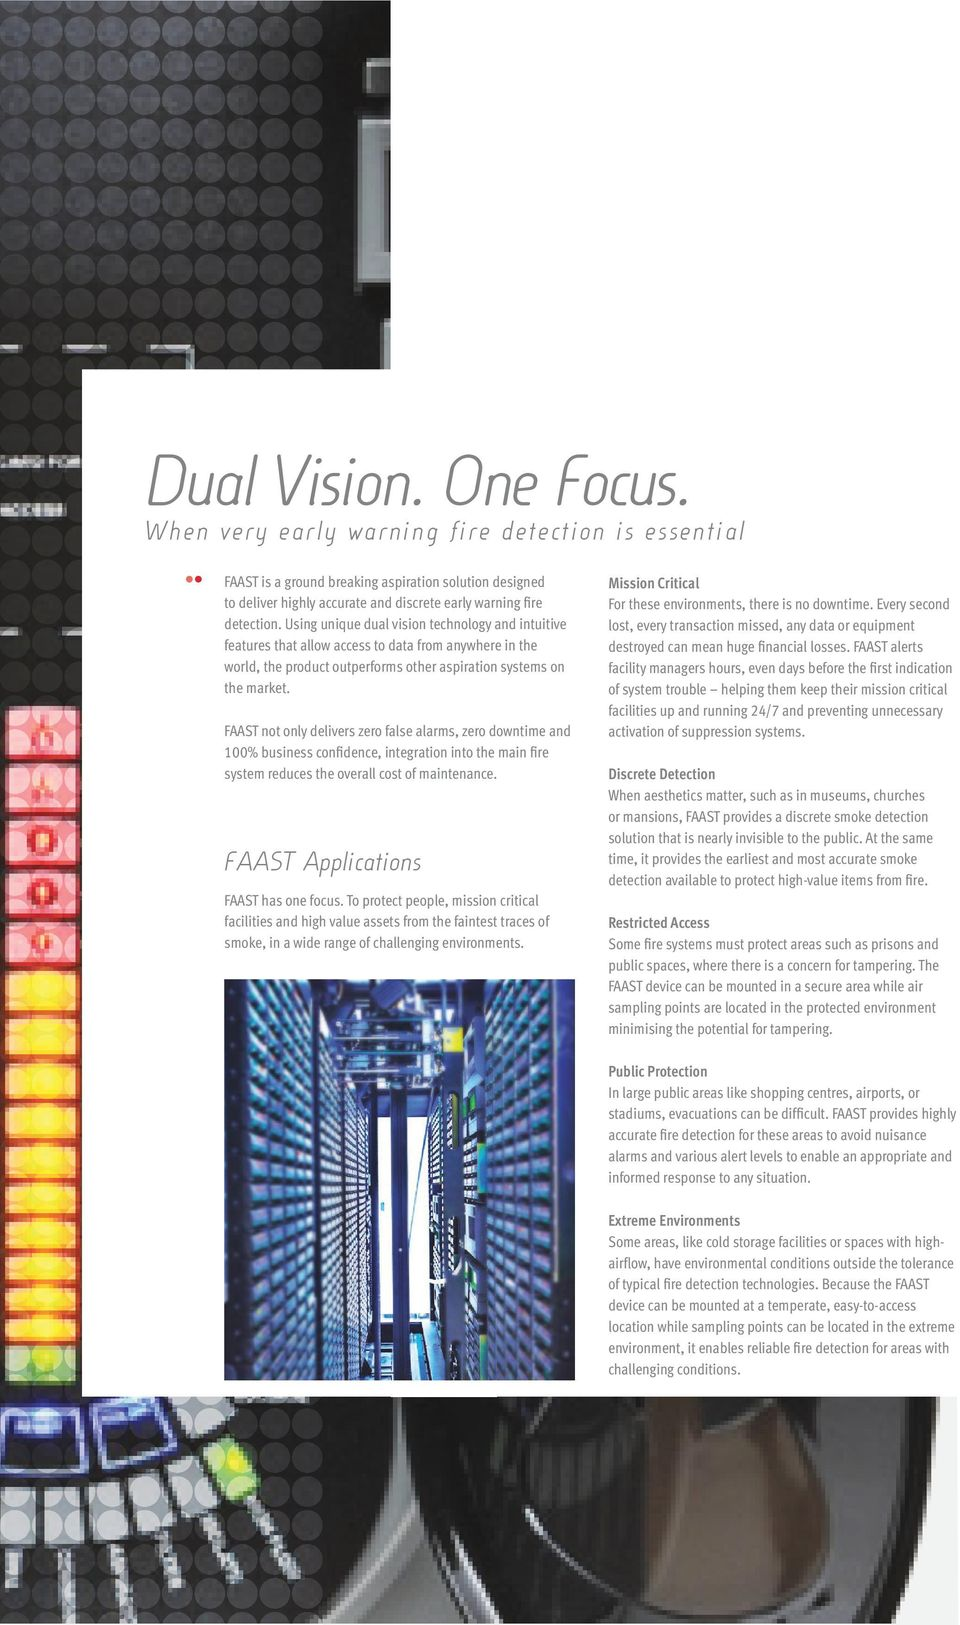 Using unique dual vision technology and intuitive features that allow access to data from anywhere in the world, the product outperforms other aspiration systems on the market.